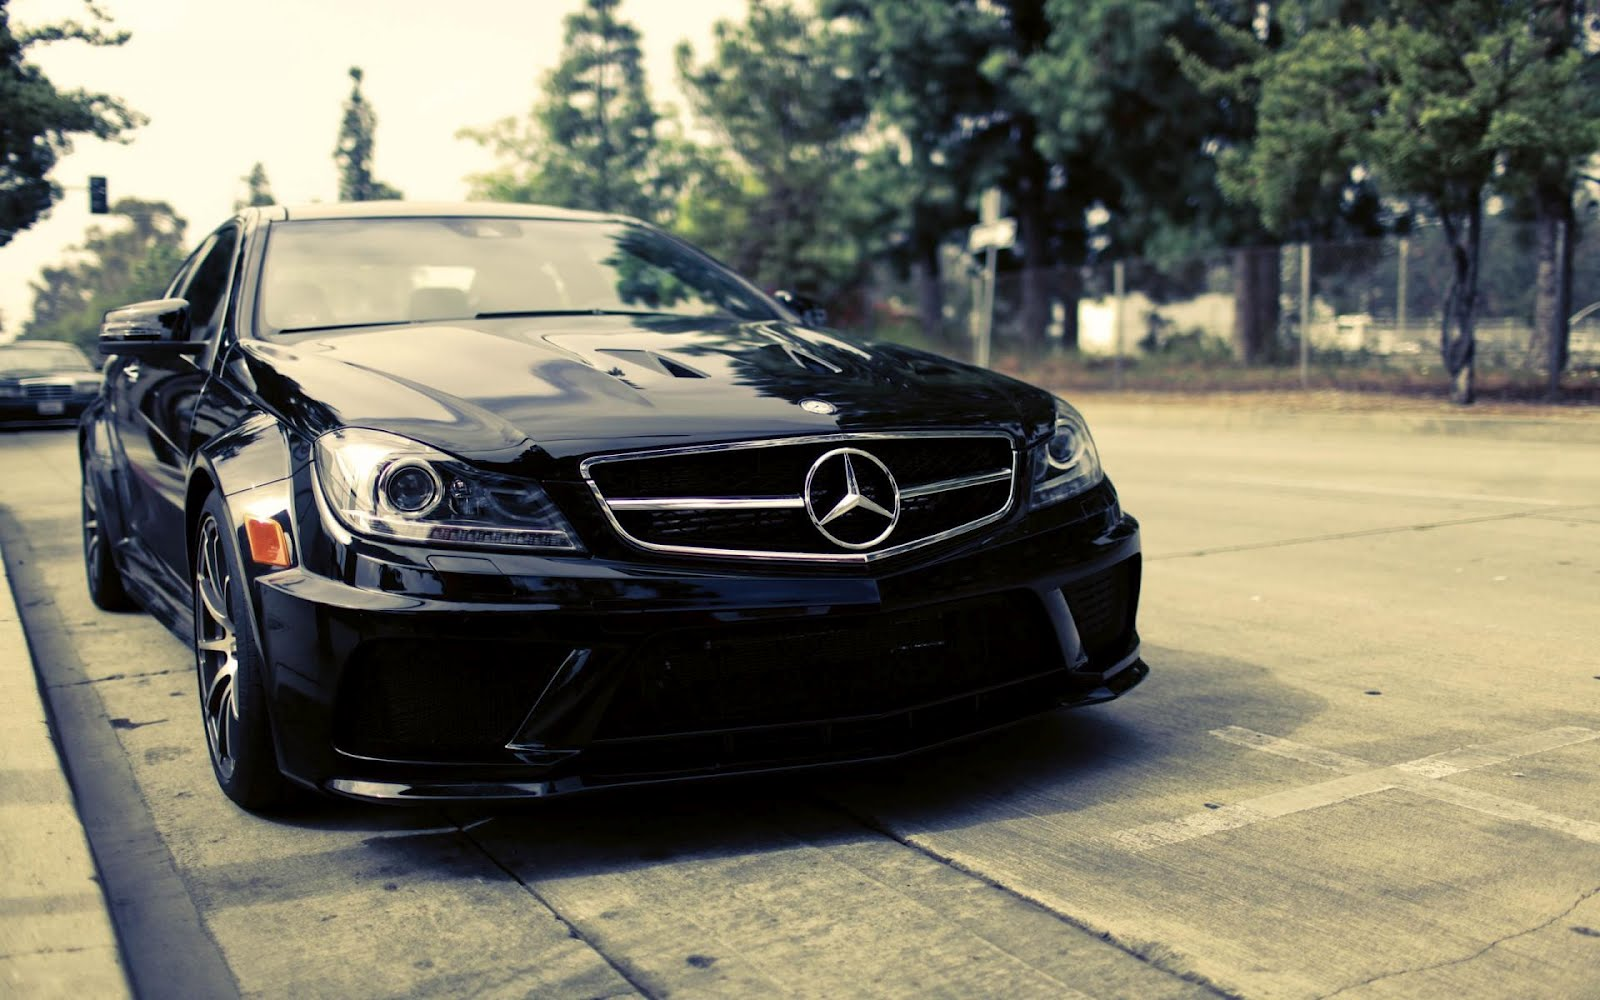 Mercedes Benz C63, HD Wallpaper